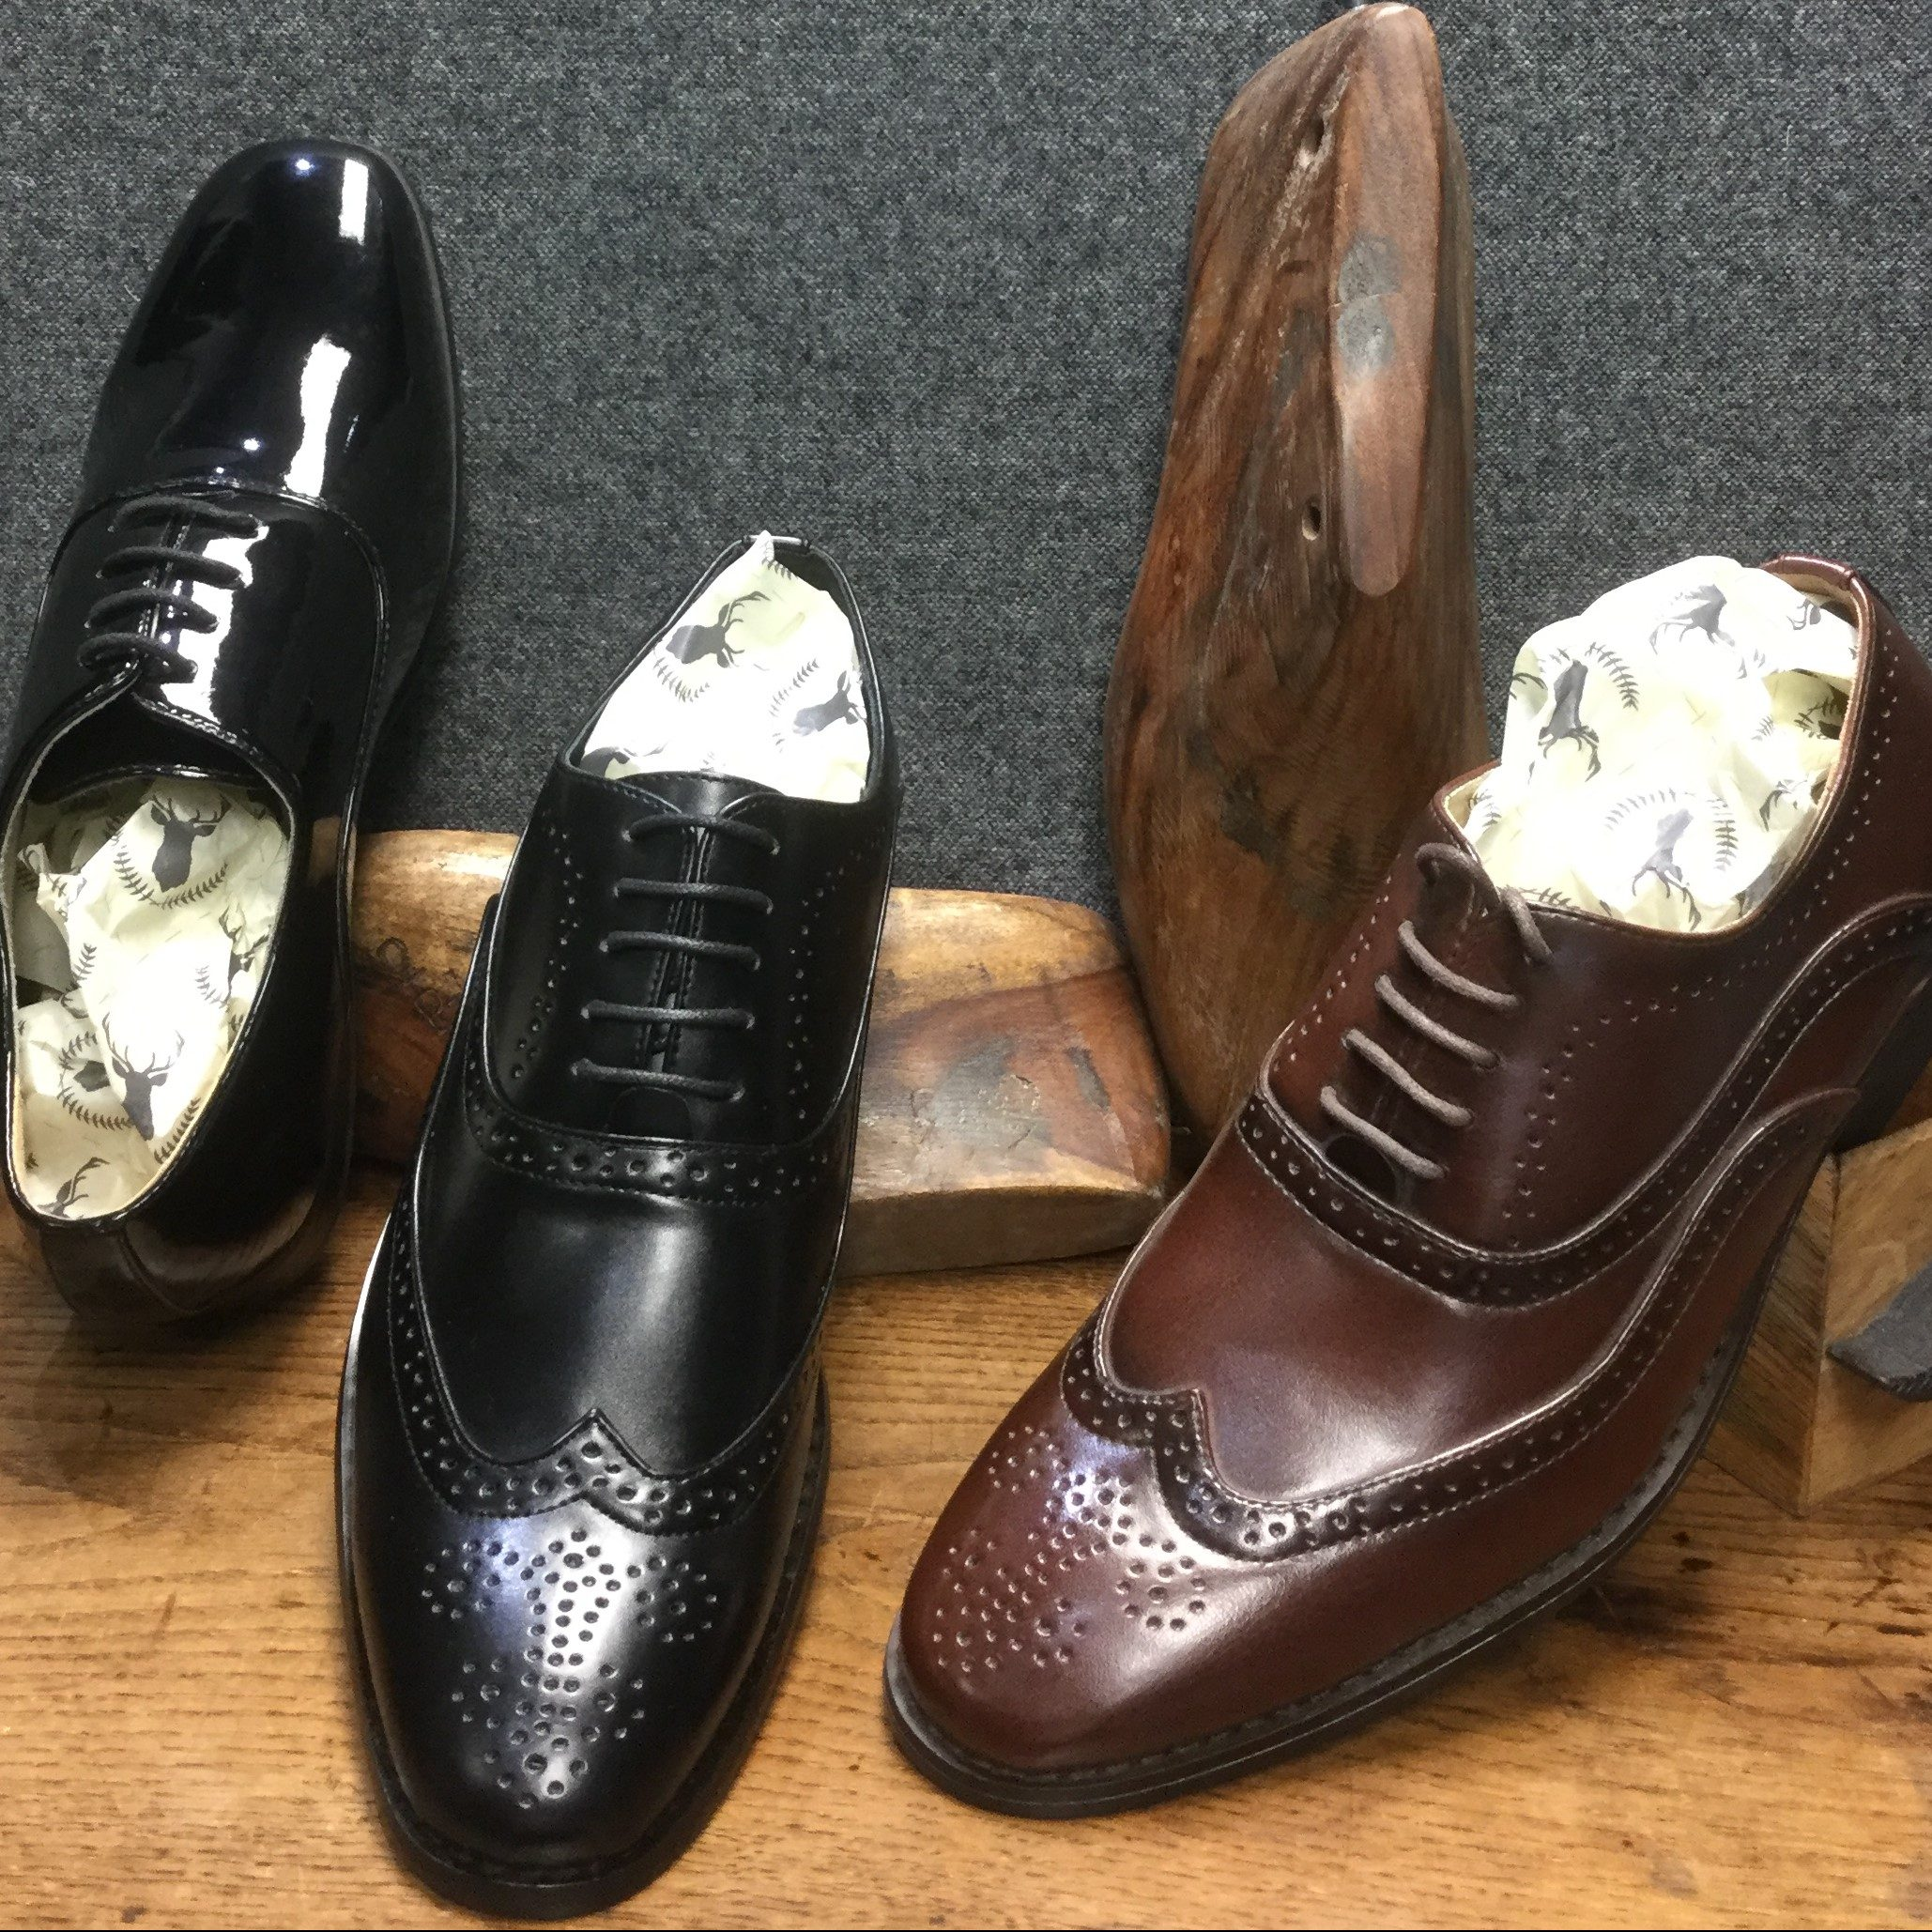 Black and Brown Brogue Formalwear Wedding Shoes and a rounded toe black patent shoe